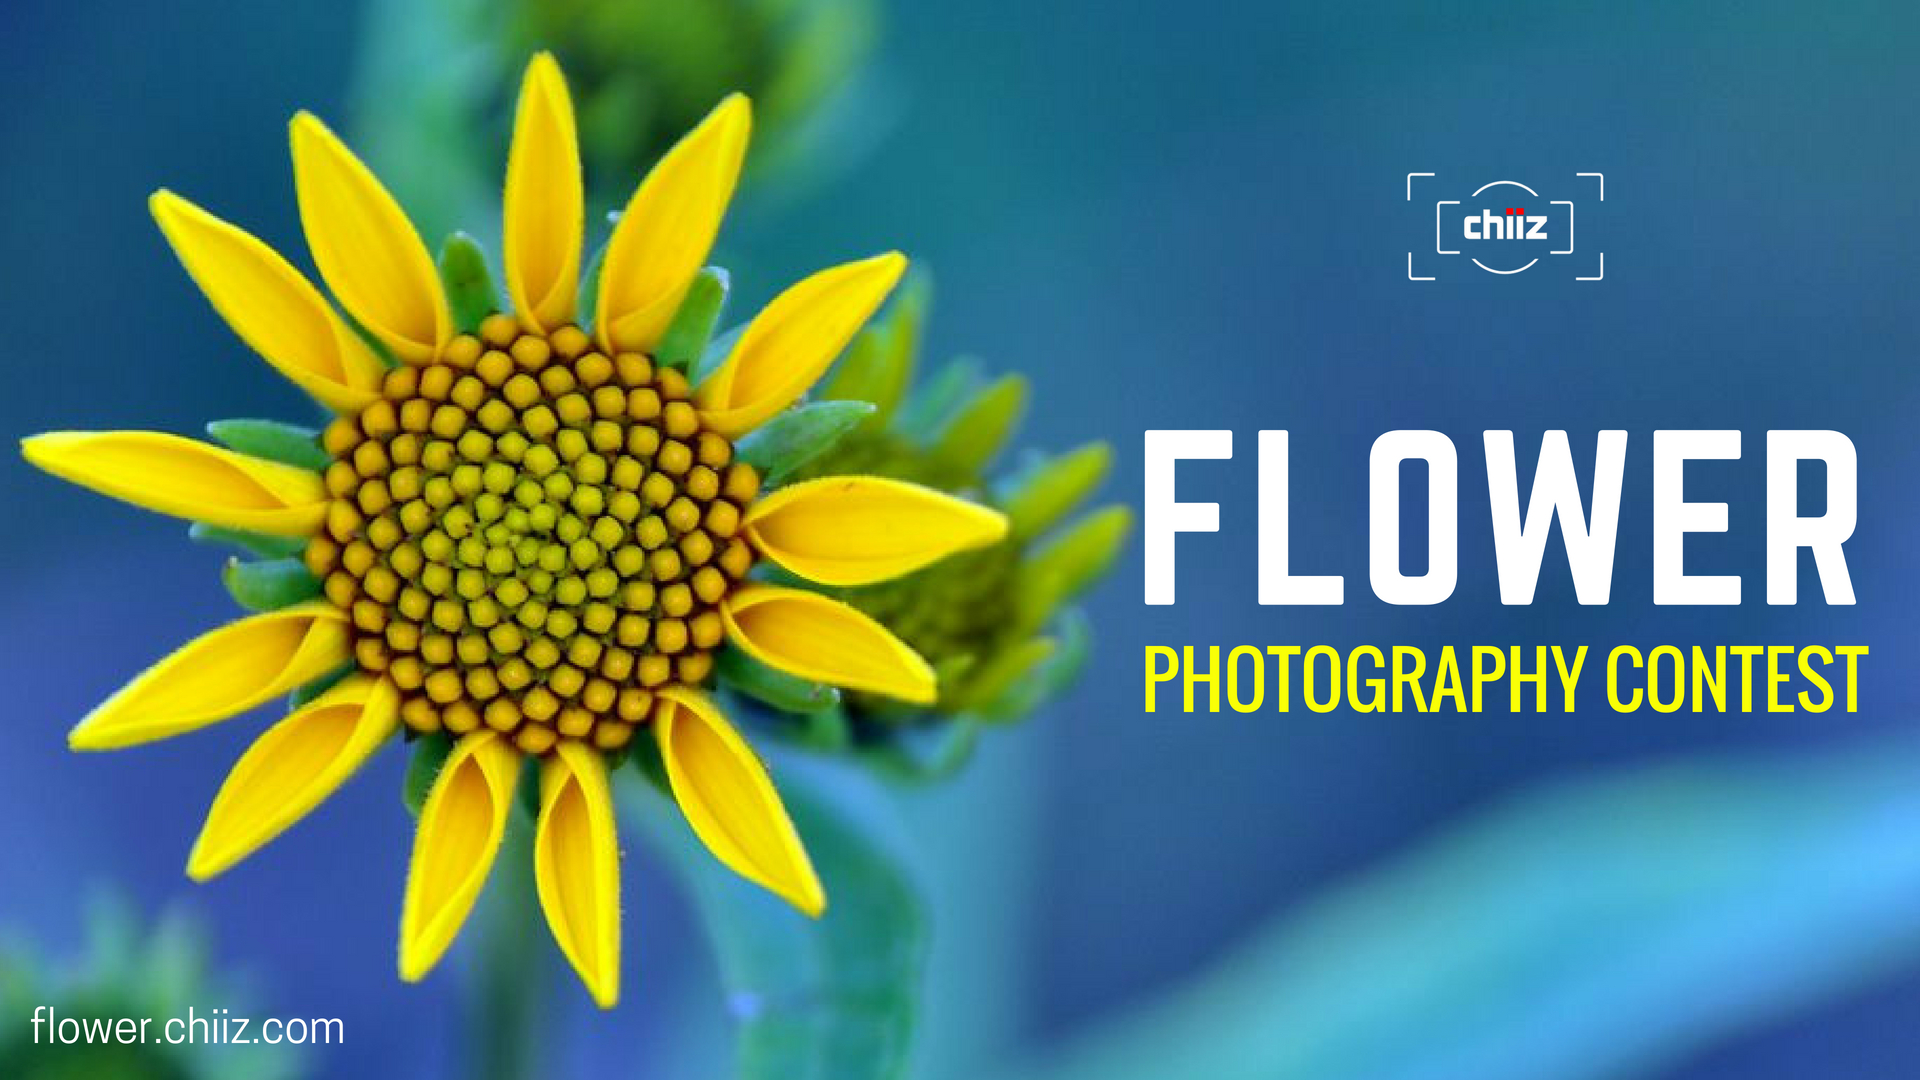 Chiiz Flower Photography Contest